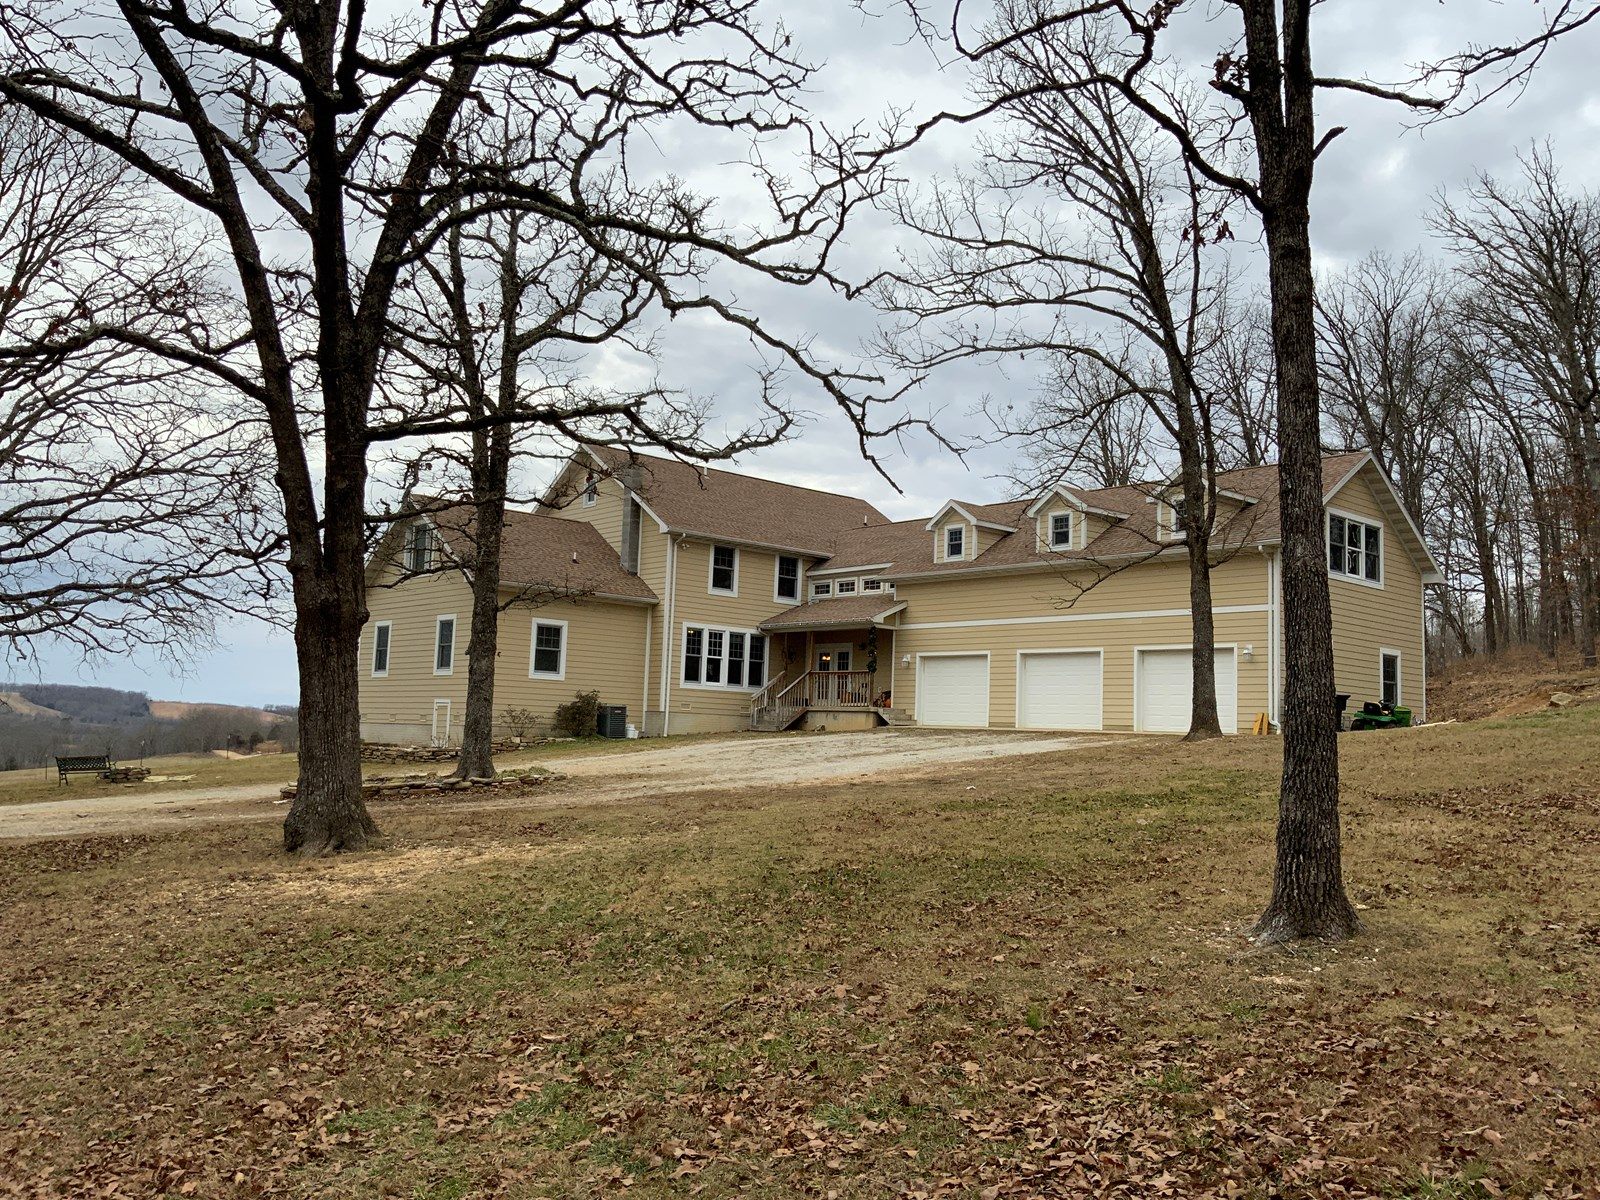 Country Home and Land for Sale in Southern Missouri Ozarks